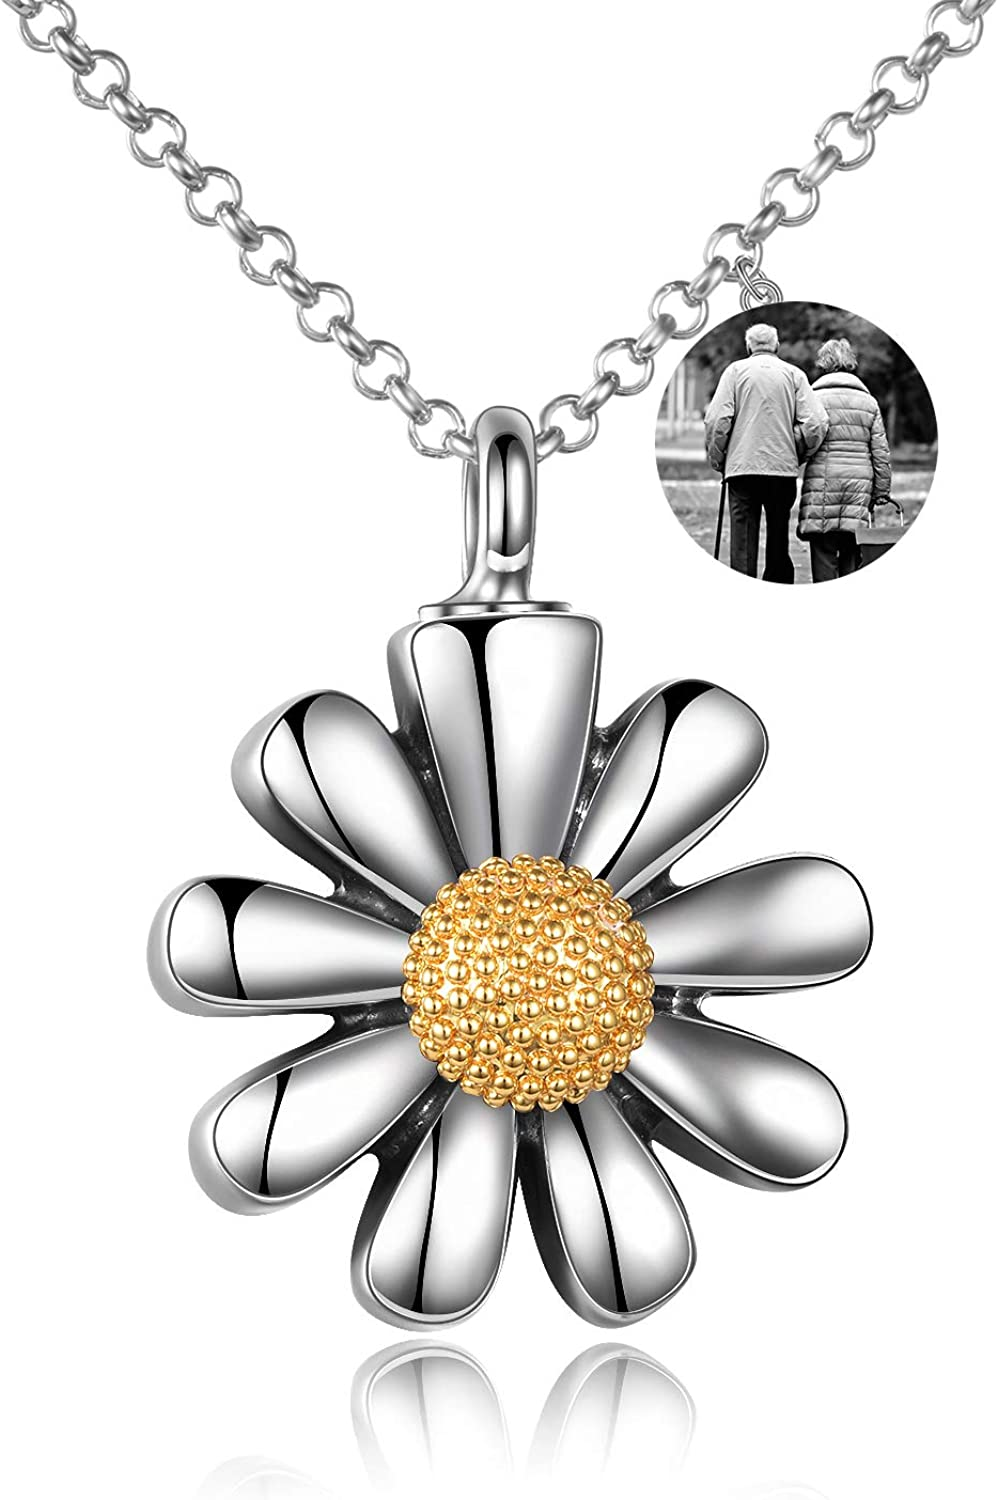 URONE Personalized Sterling Max 65% OFF Silver Excellent Sunflower Necklace Urn for As